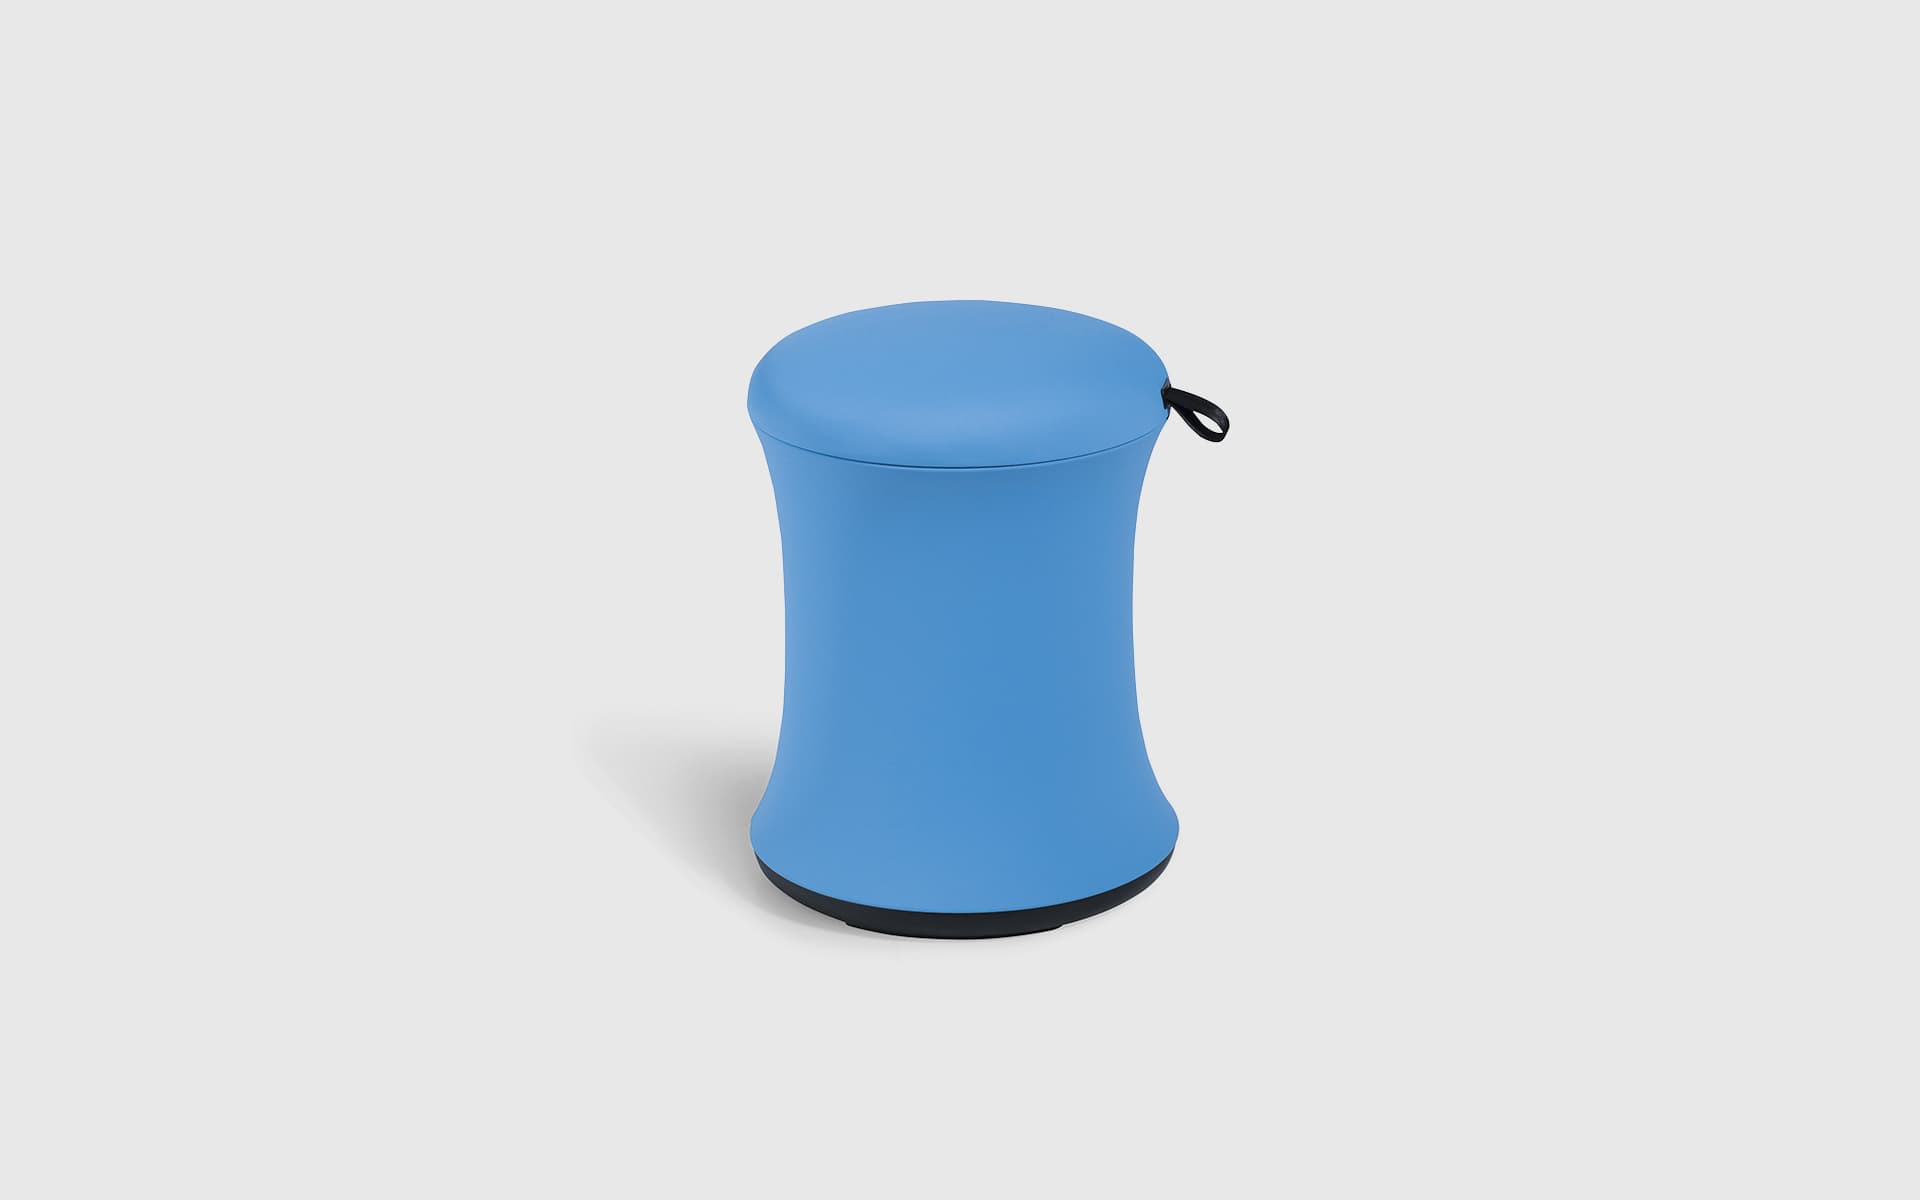 UE Furniture Uebobo Hocker von ITO Design in Blau